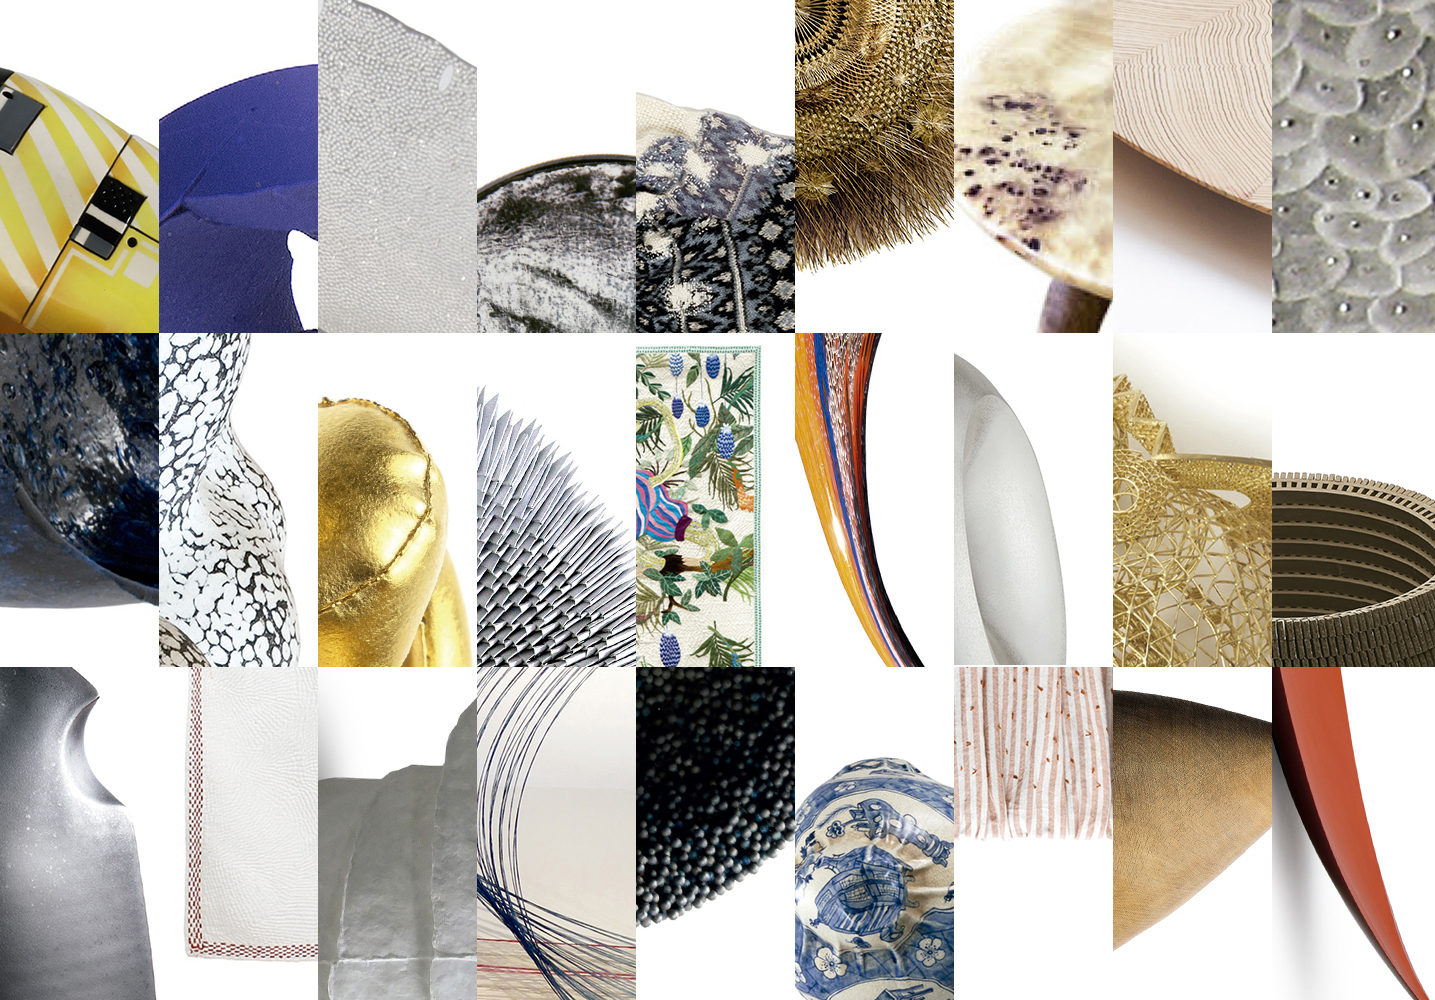 loewe craft prize award for excellence in craft and design